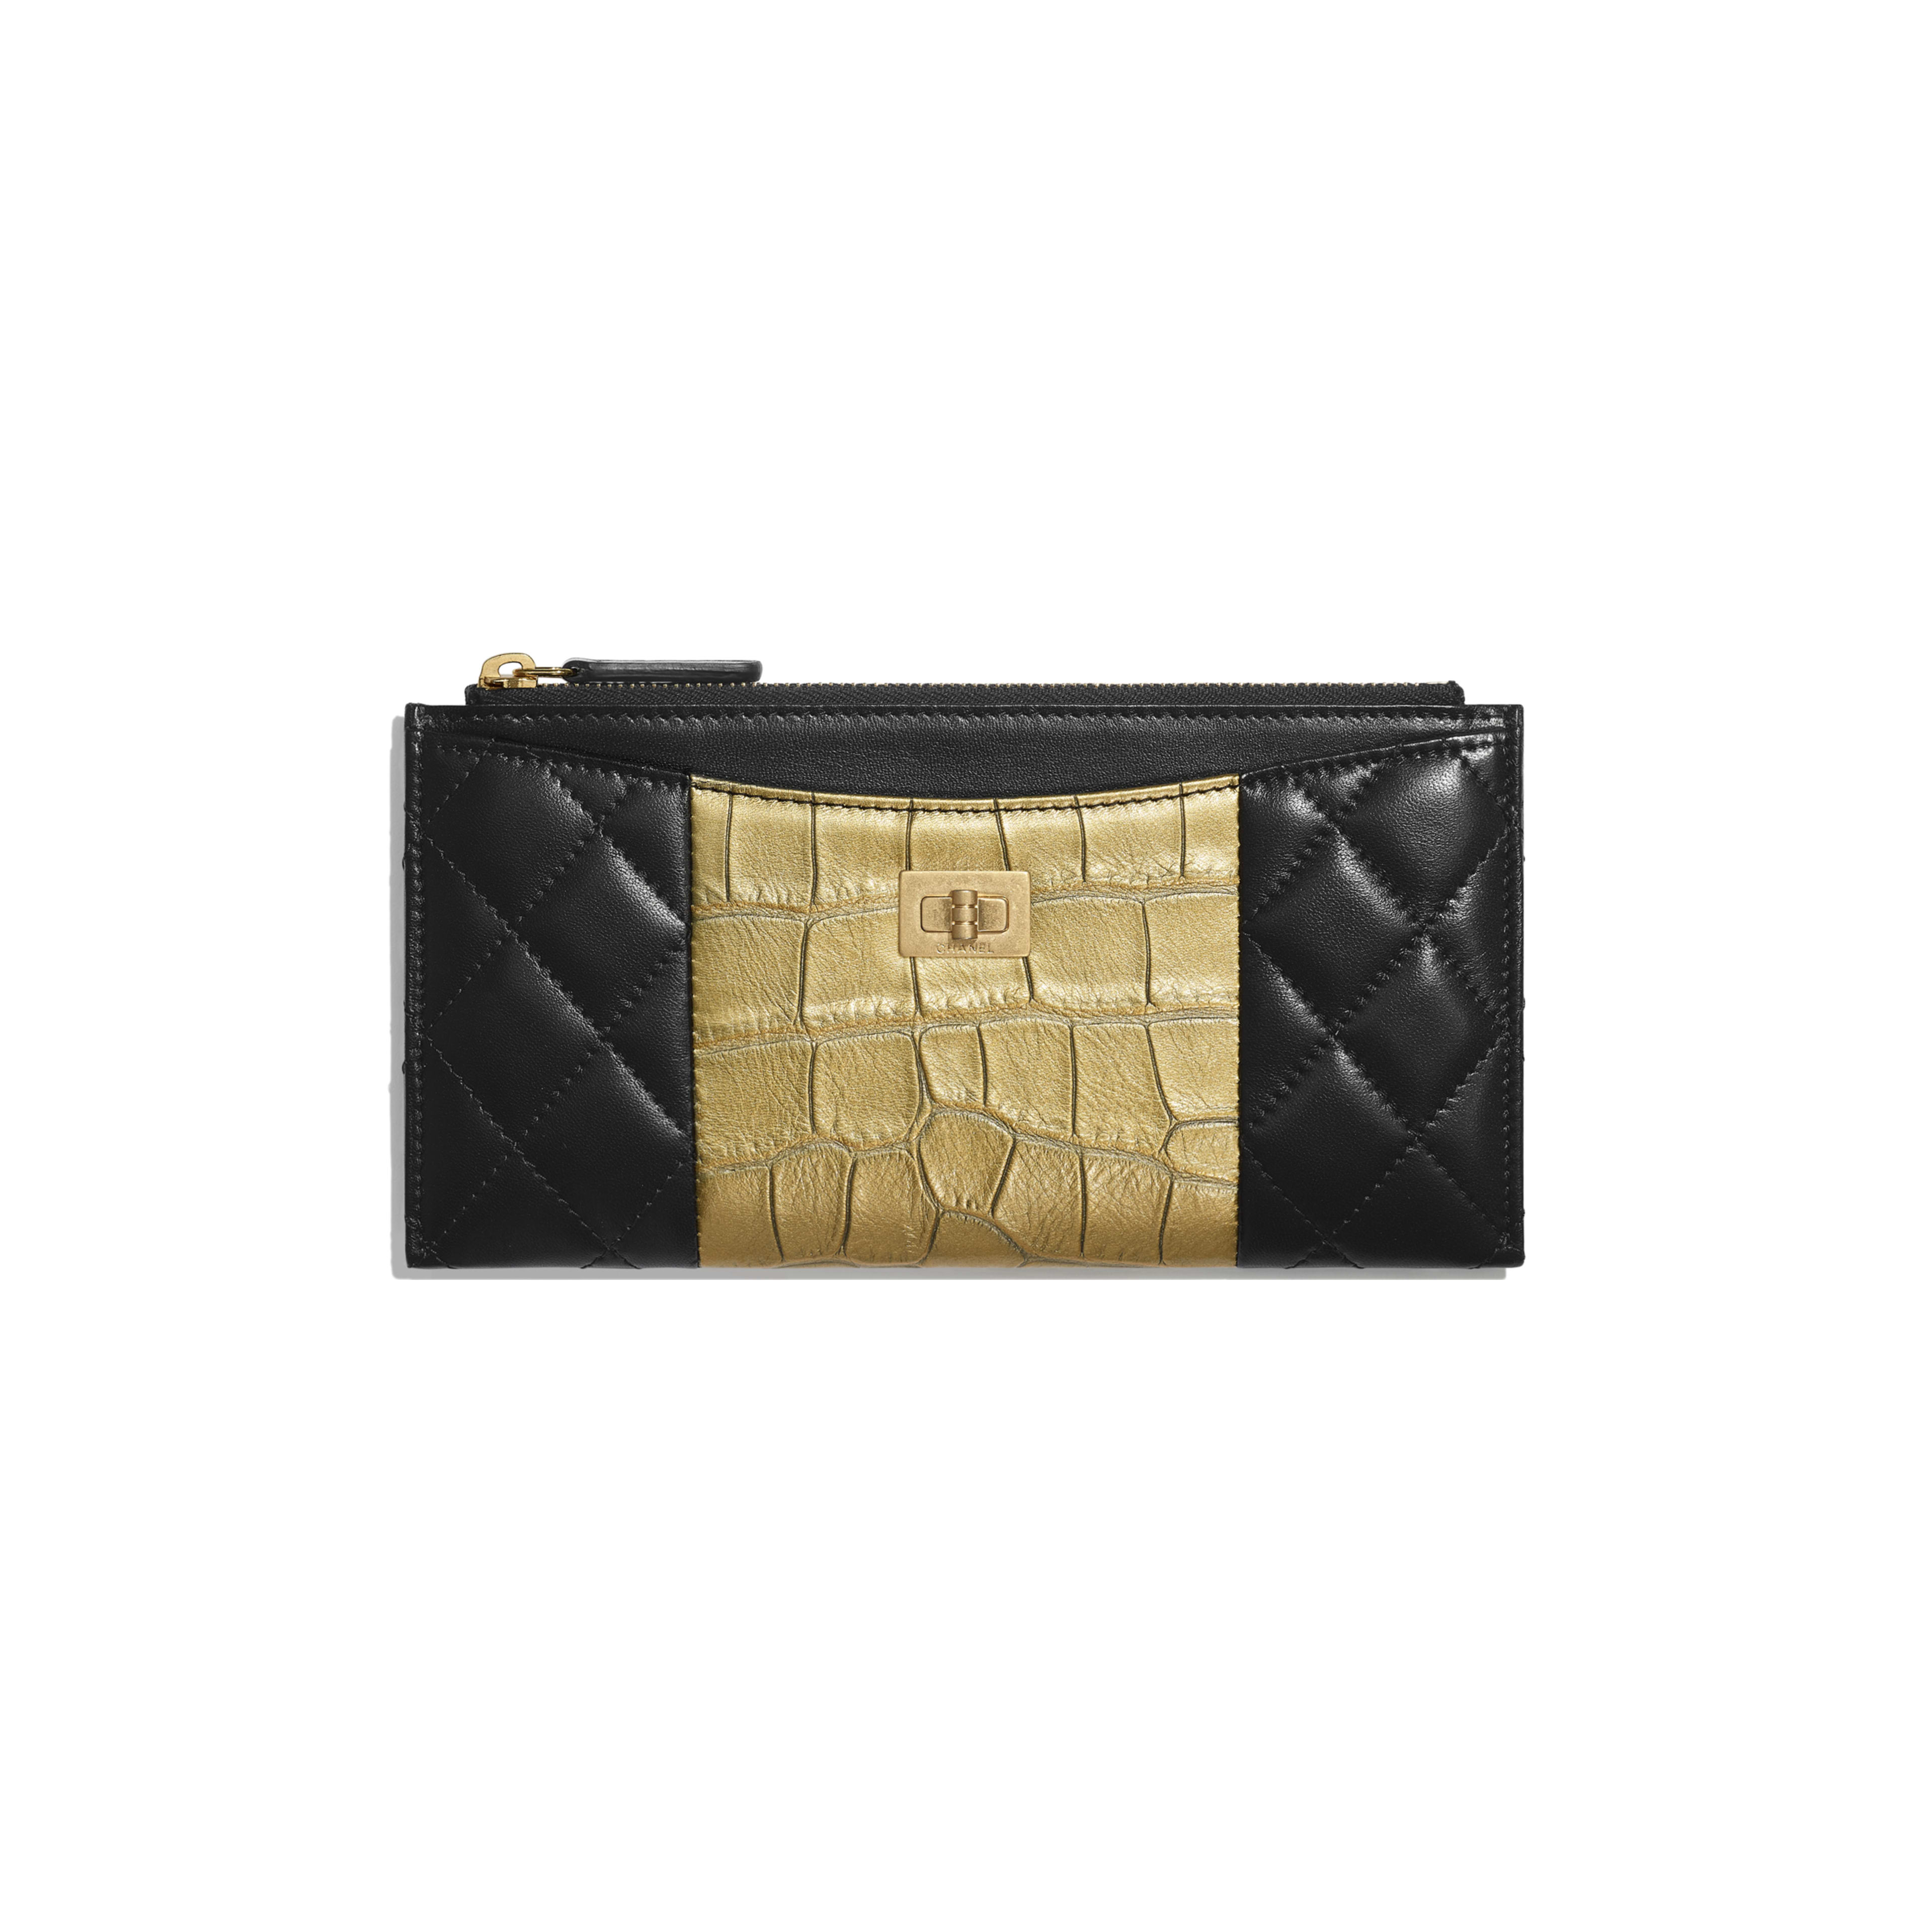 2.55 Pouch - Black & Gold - Lambskin, Crocodile Embossed Calfskin & Gold-Tone Metal - Default view - see full sized version